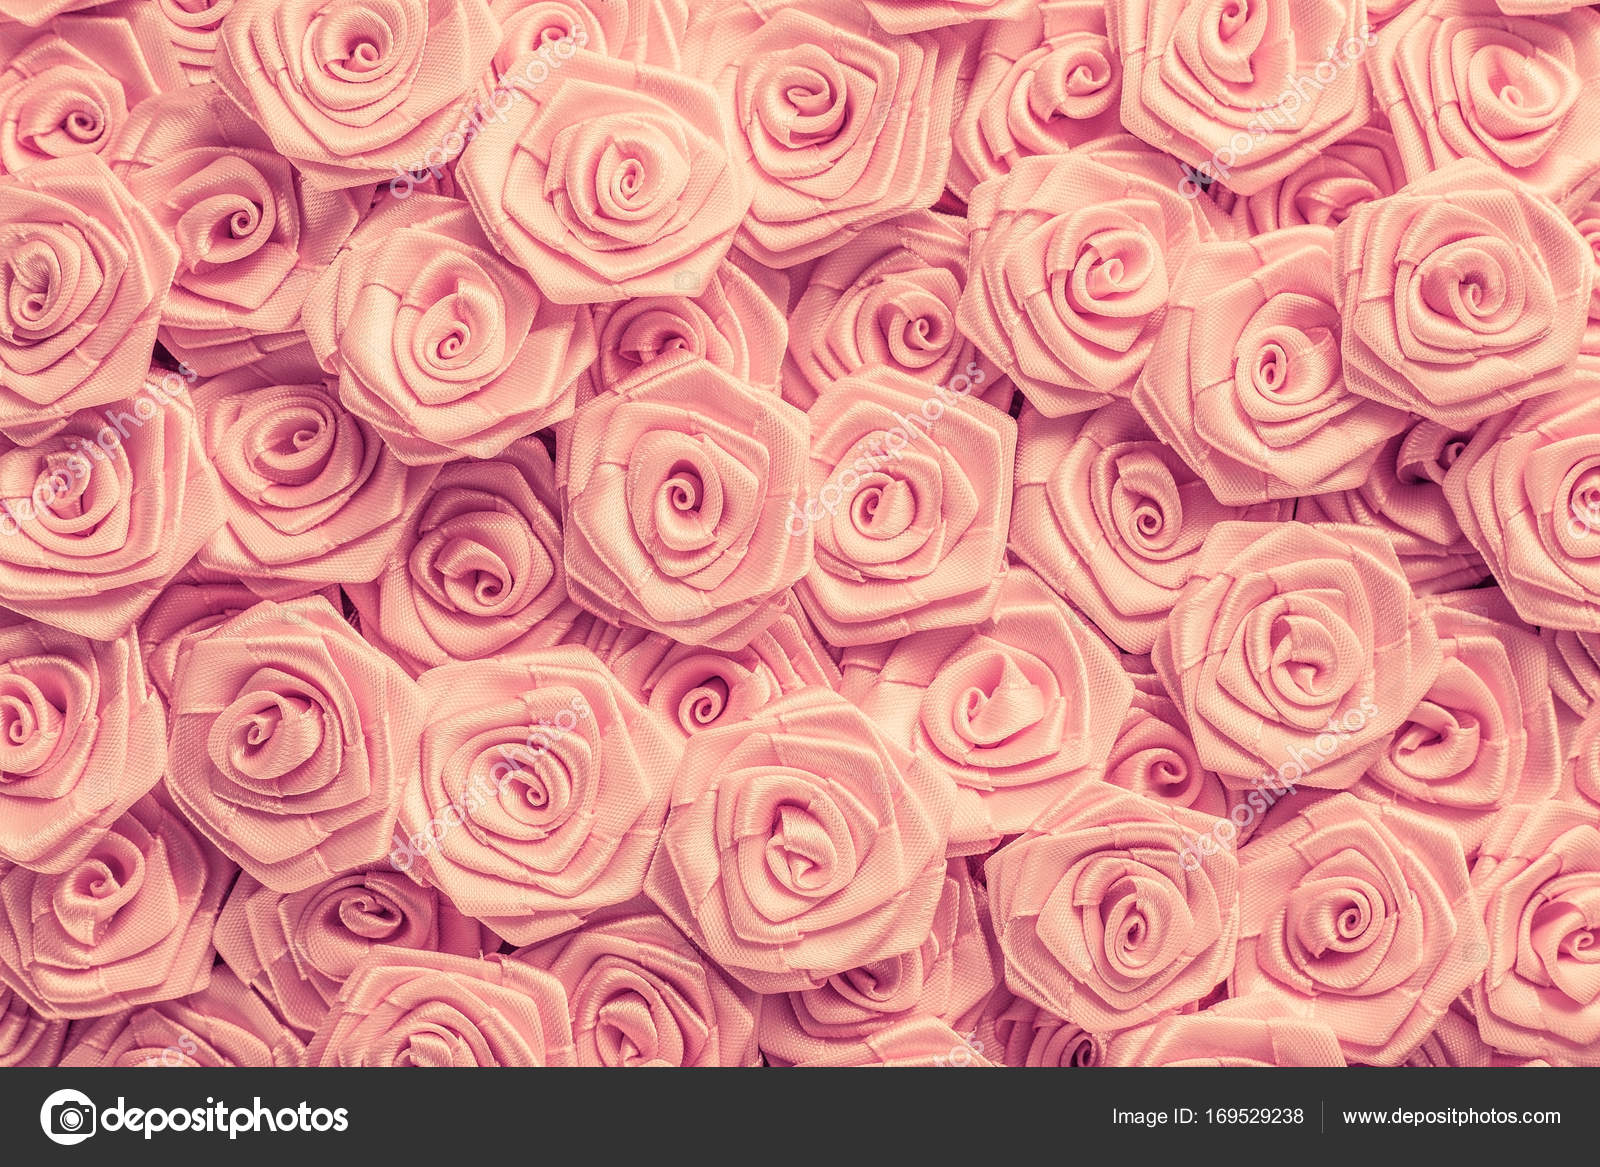 Wedding Roses Background Light Pink Roses Decoration Of The